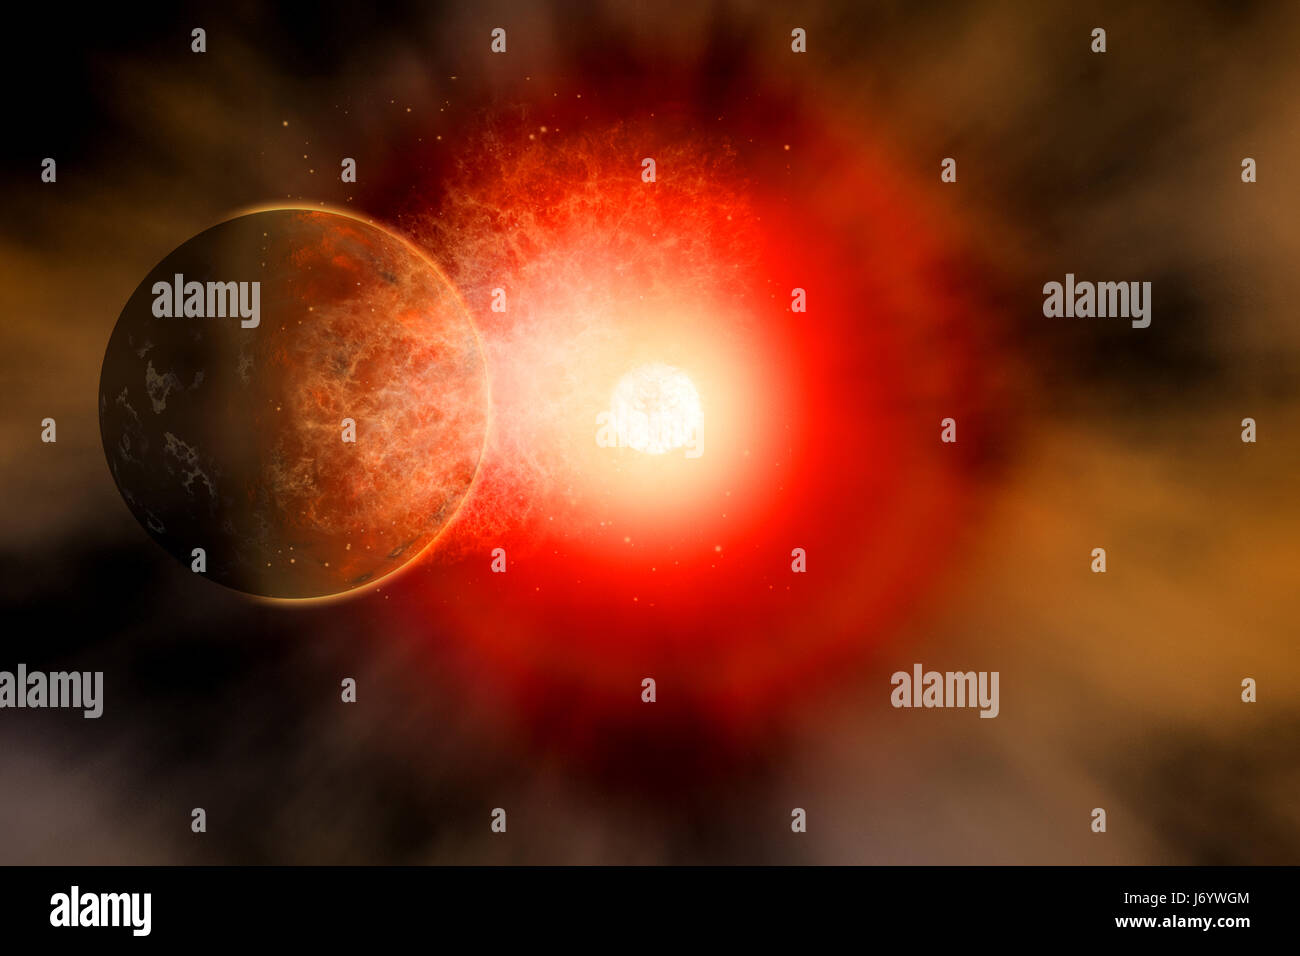 A Dying Star Becoming A Supernova, Destroying Anything In Its Path , Including Orbiting Planets. - Stock Image